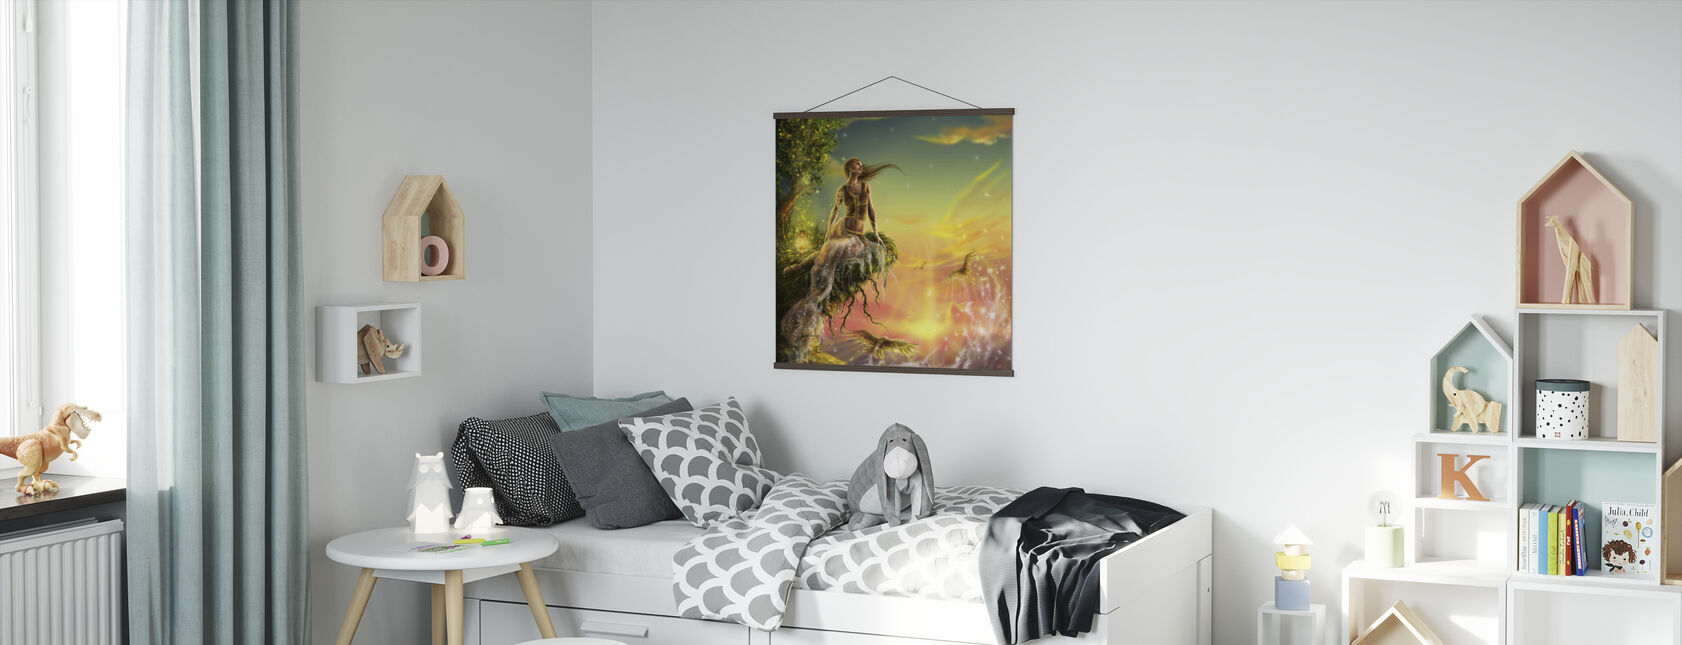 Golden Night - Poster - Kids Room